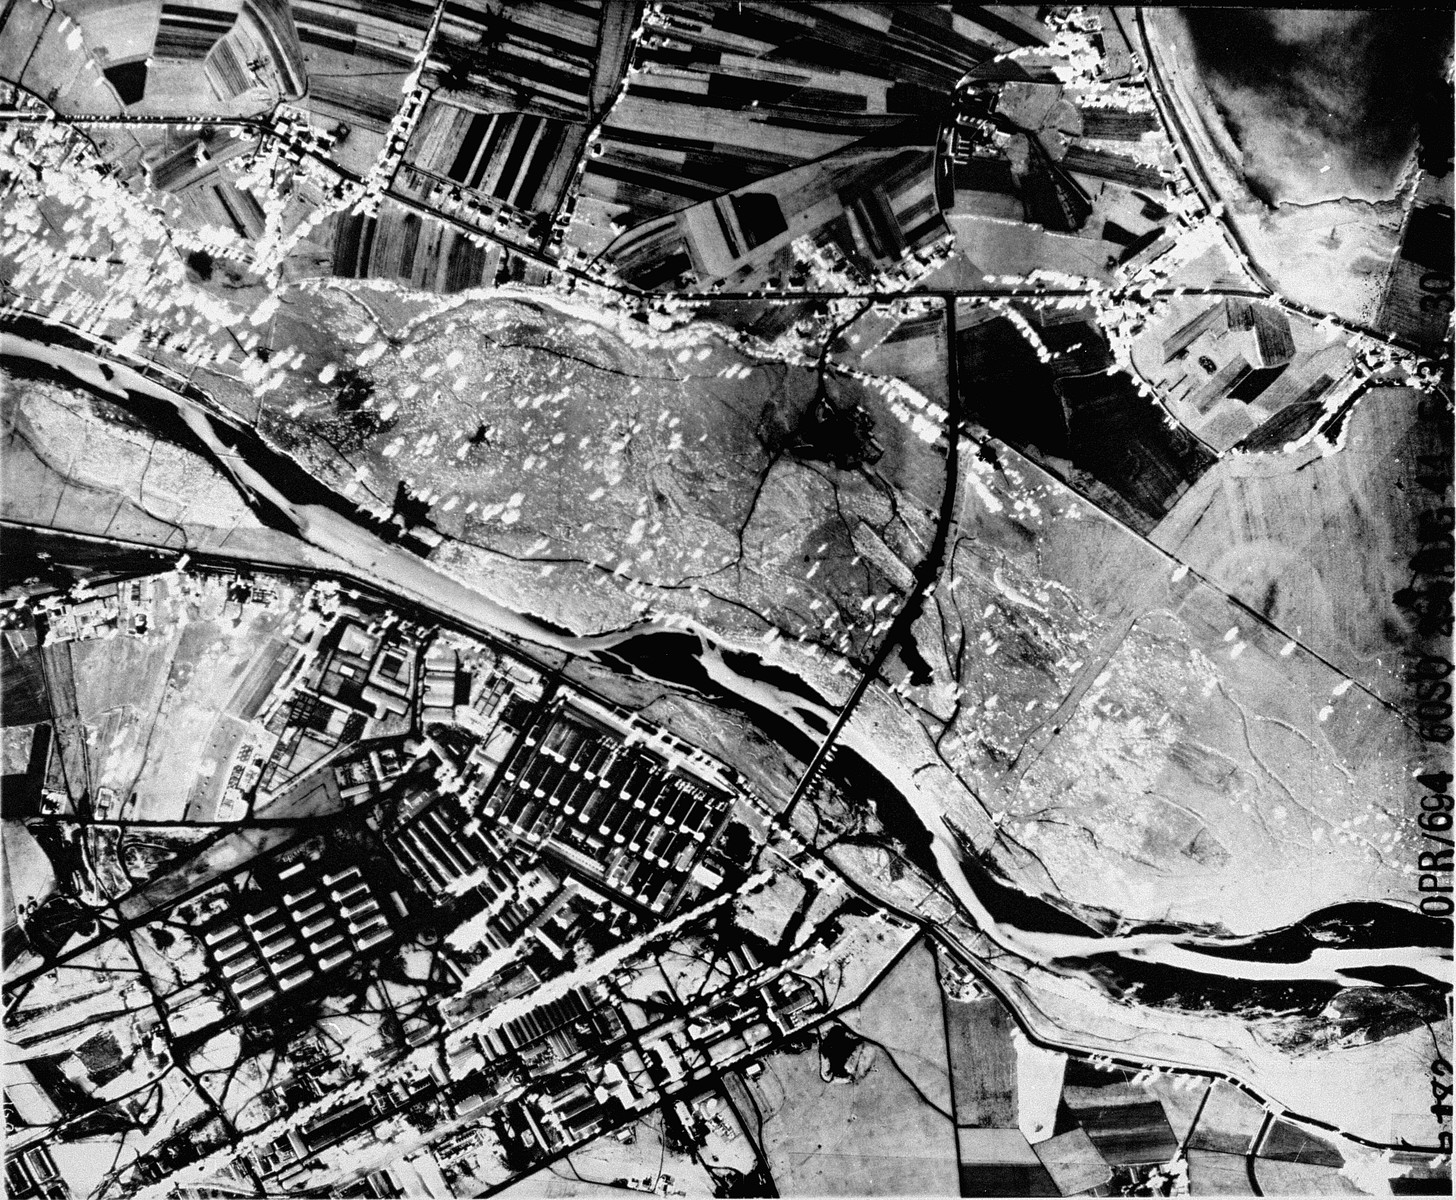 An aerial reconnaissance photograph of  Auschwitz I showing the administrative and living areas.